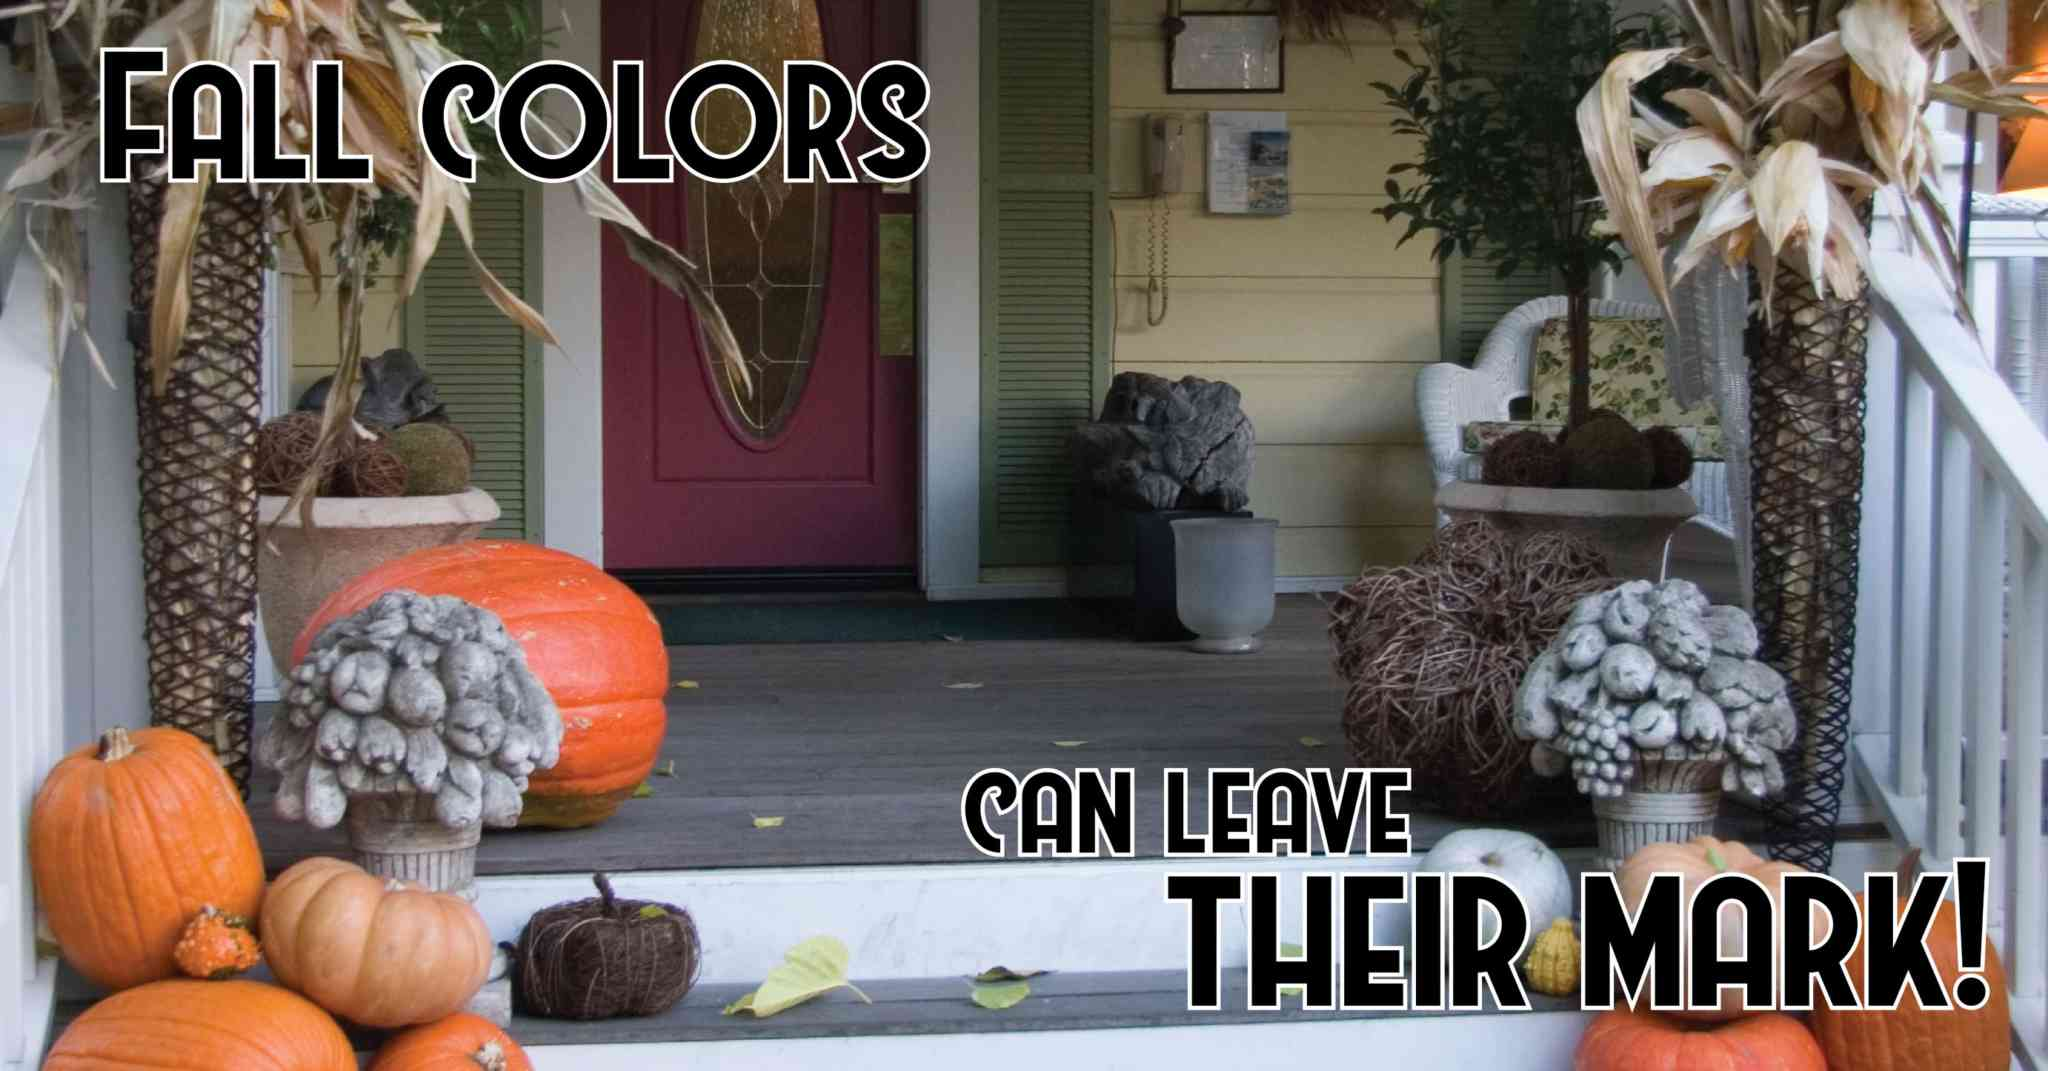 Pumpkins, Leaves, & Stains